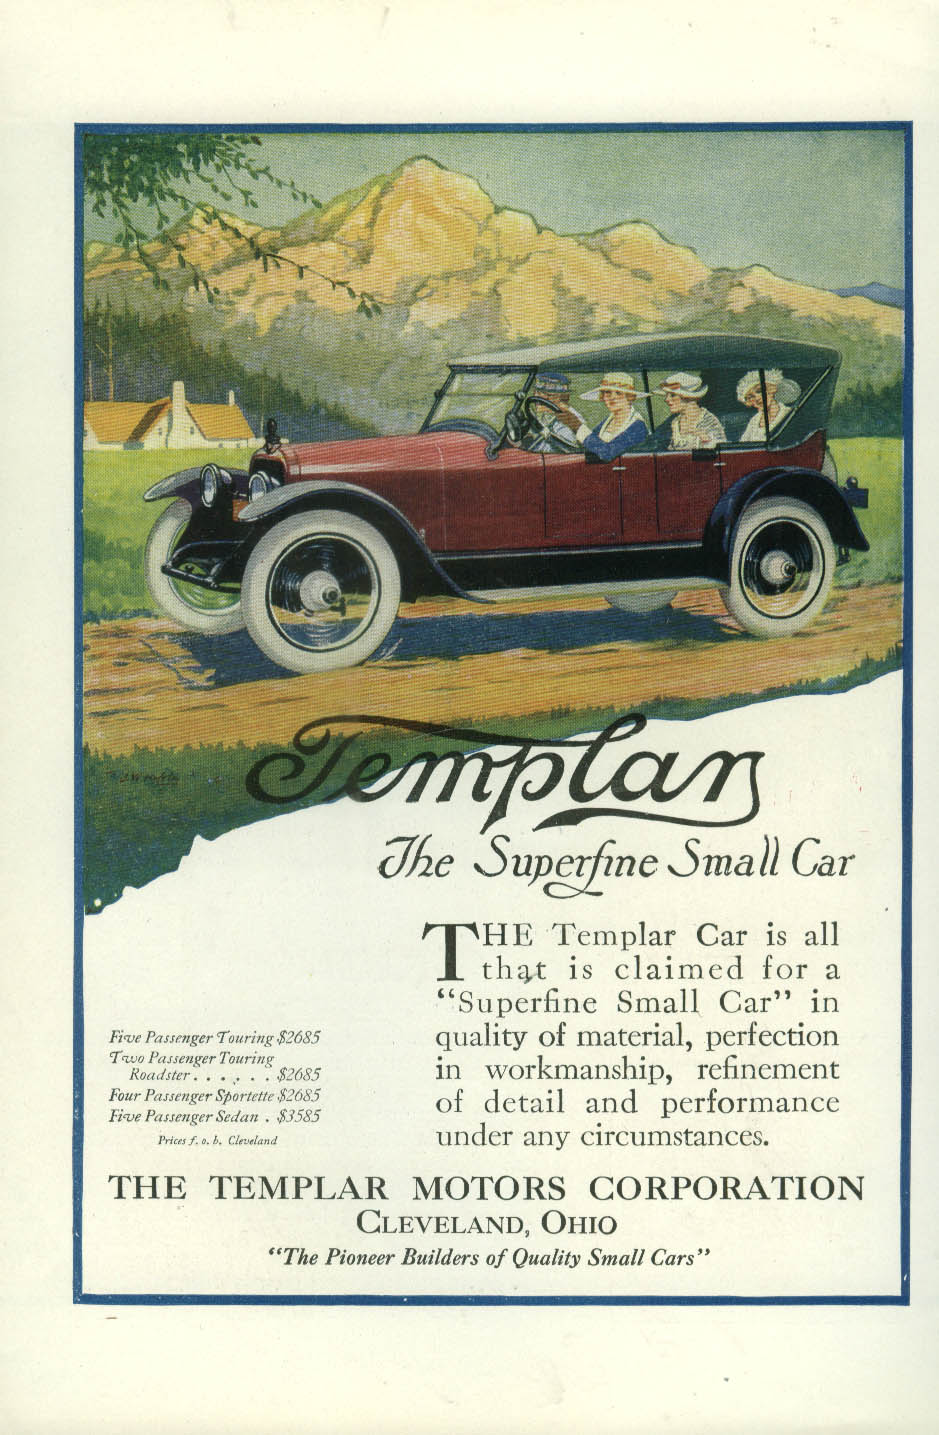 All that is claimed for Templar The Superfine Small Car ad 1920